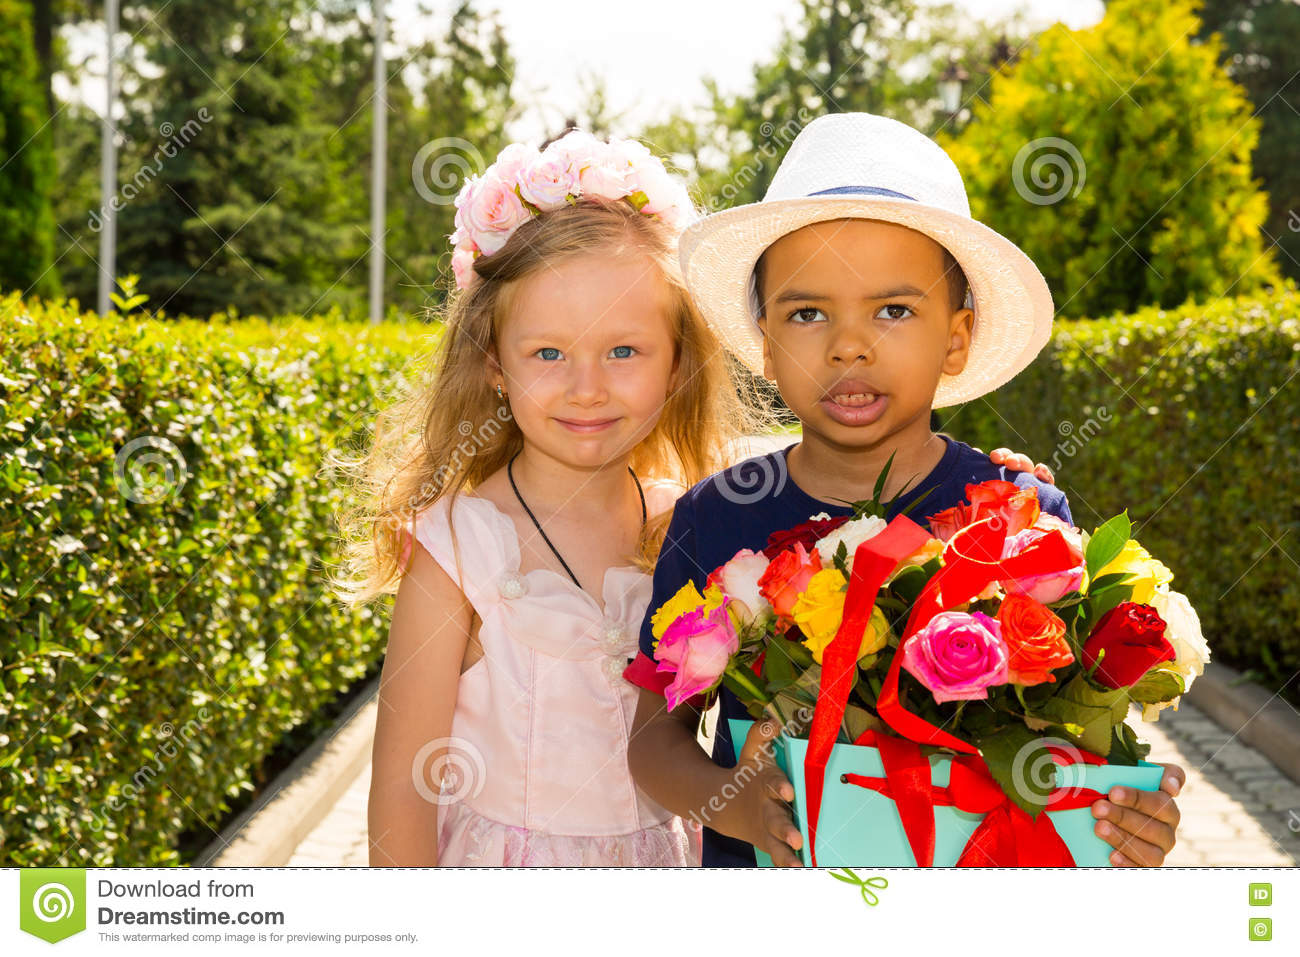 Black African American Boy Kid Gives Flowers To Girl Child On Birthday Little Adorable Children In Park Childhood And Love